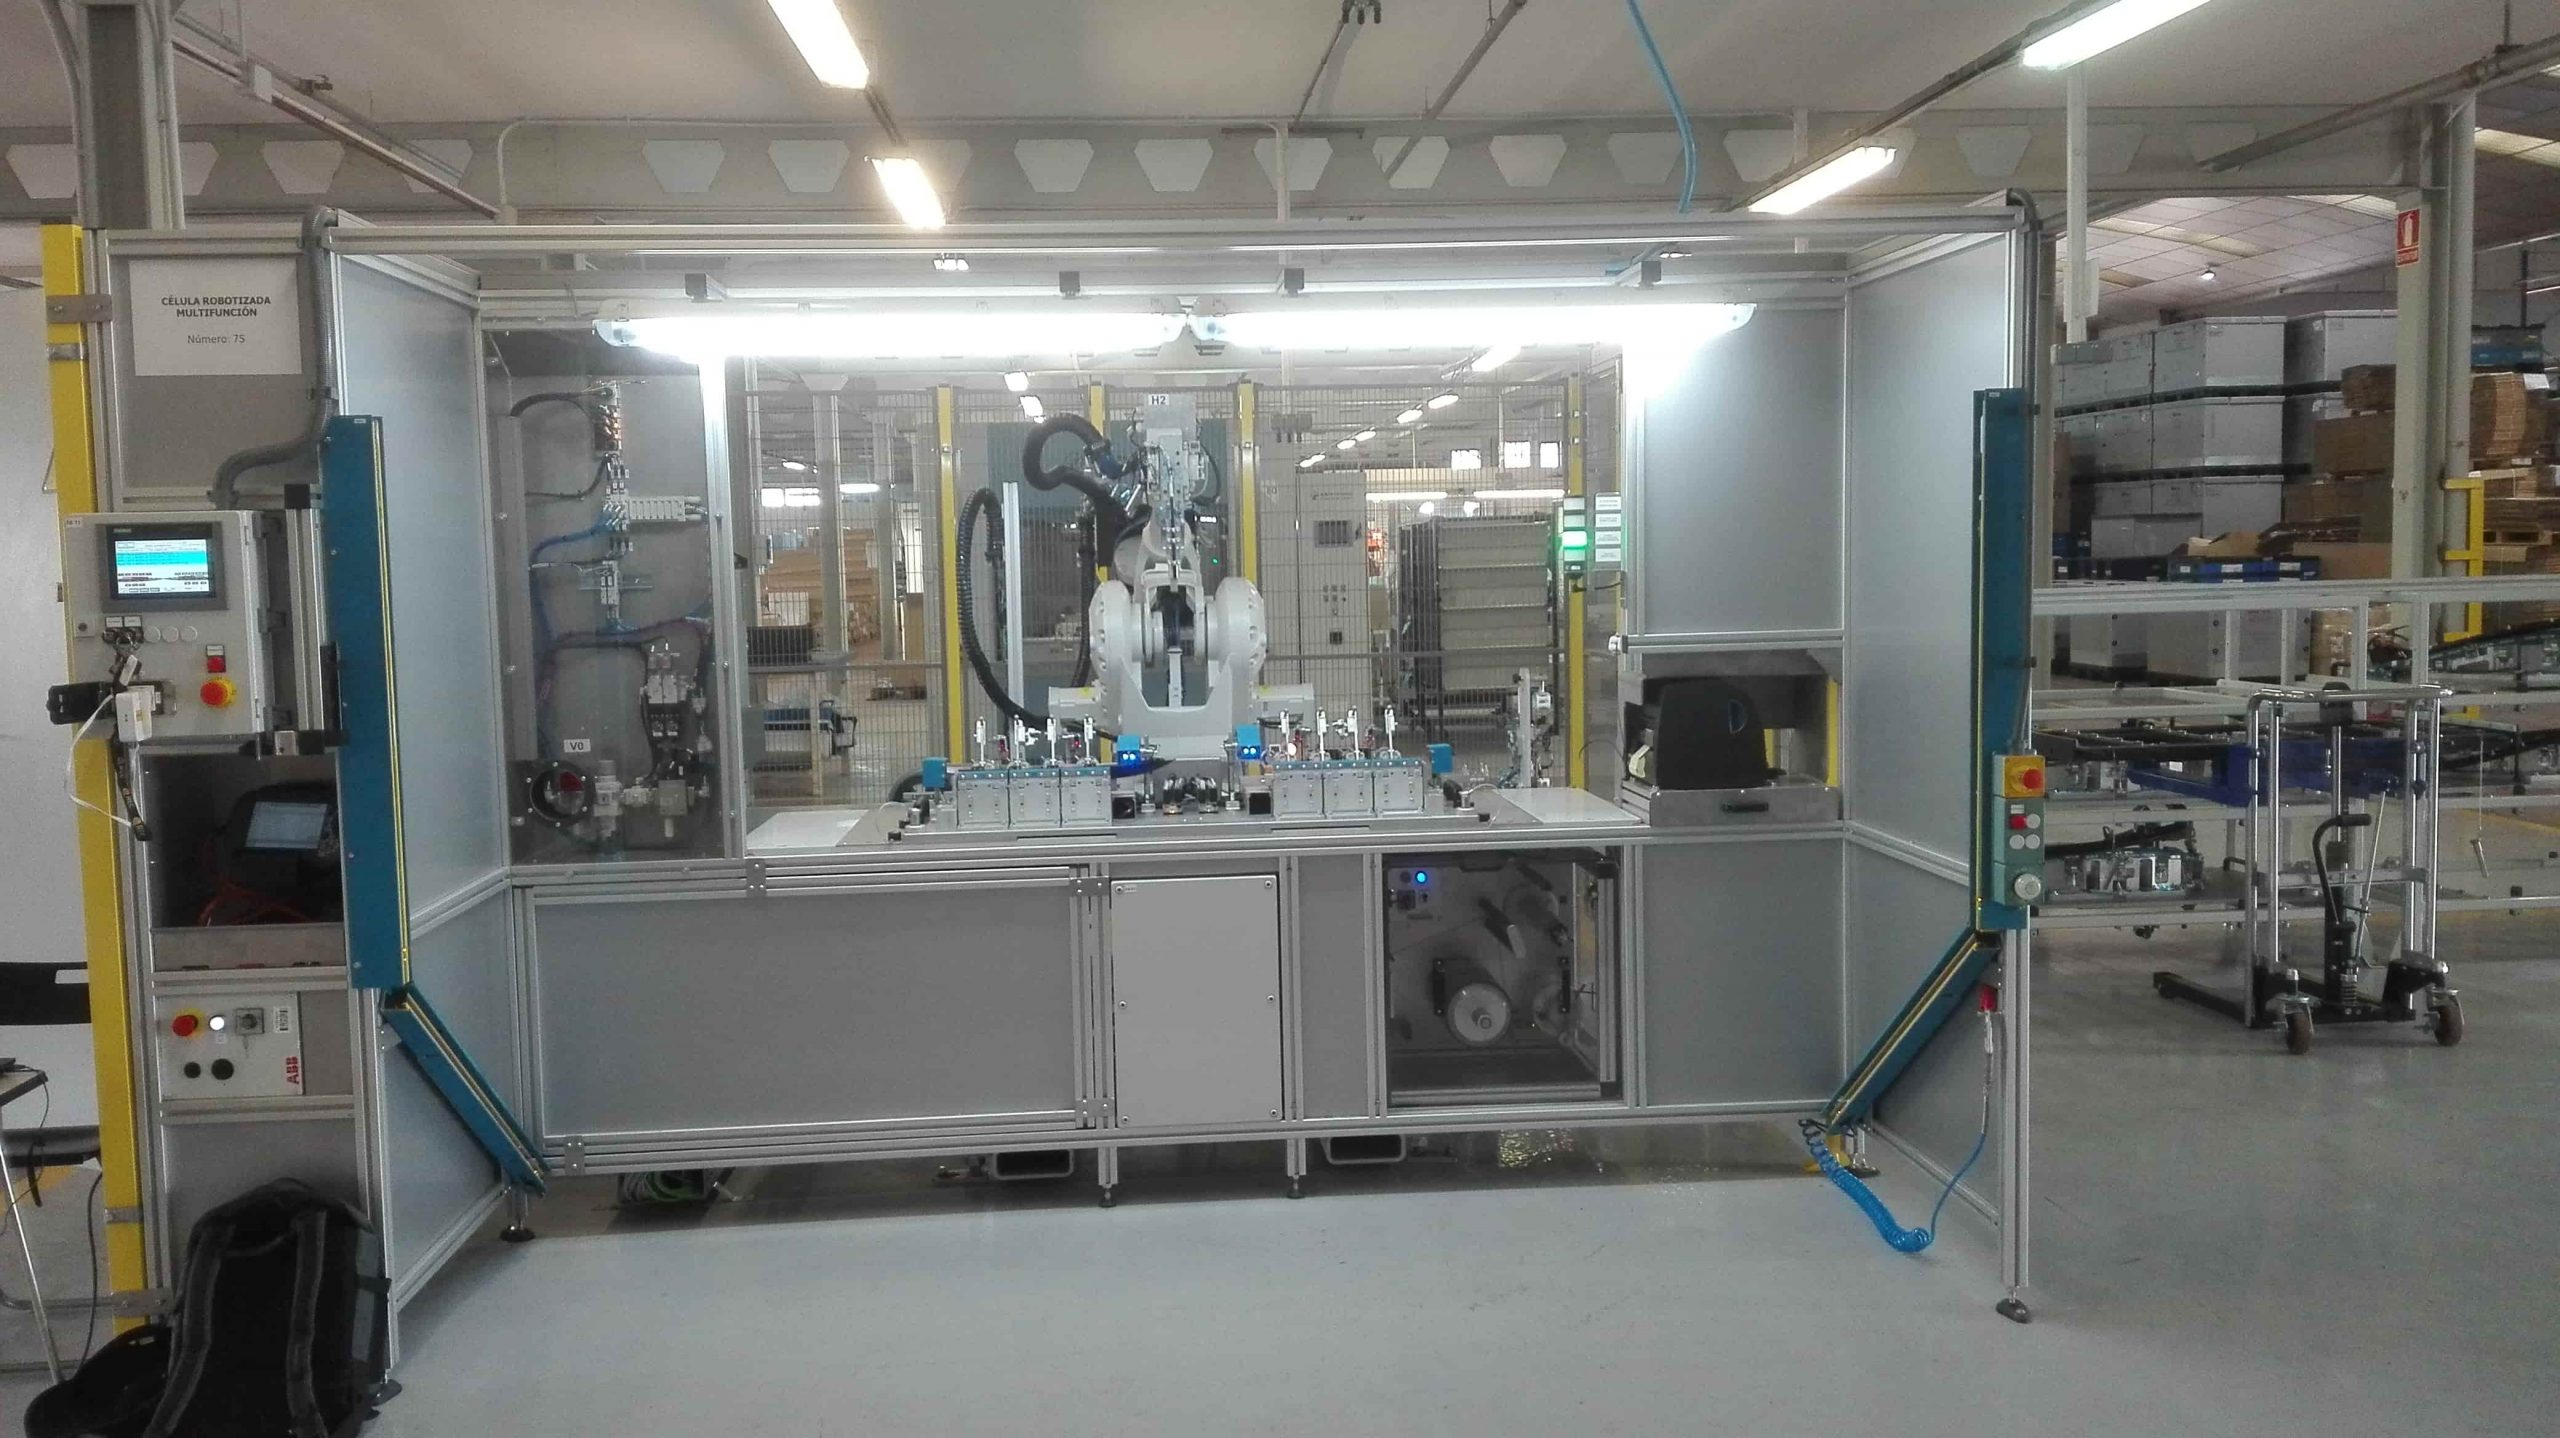 MULTIFUNCTION ROBOTIC CELL